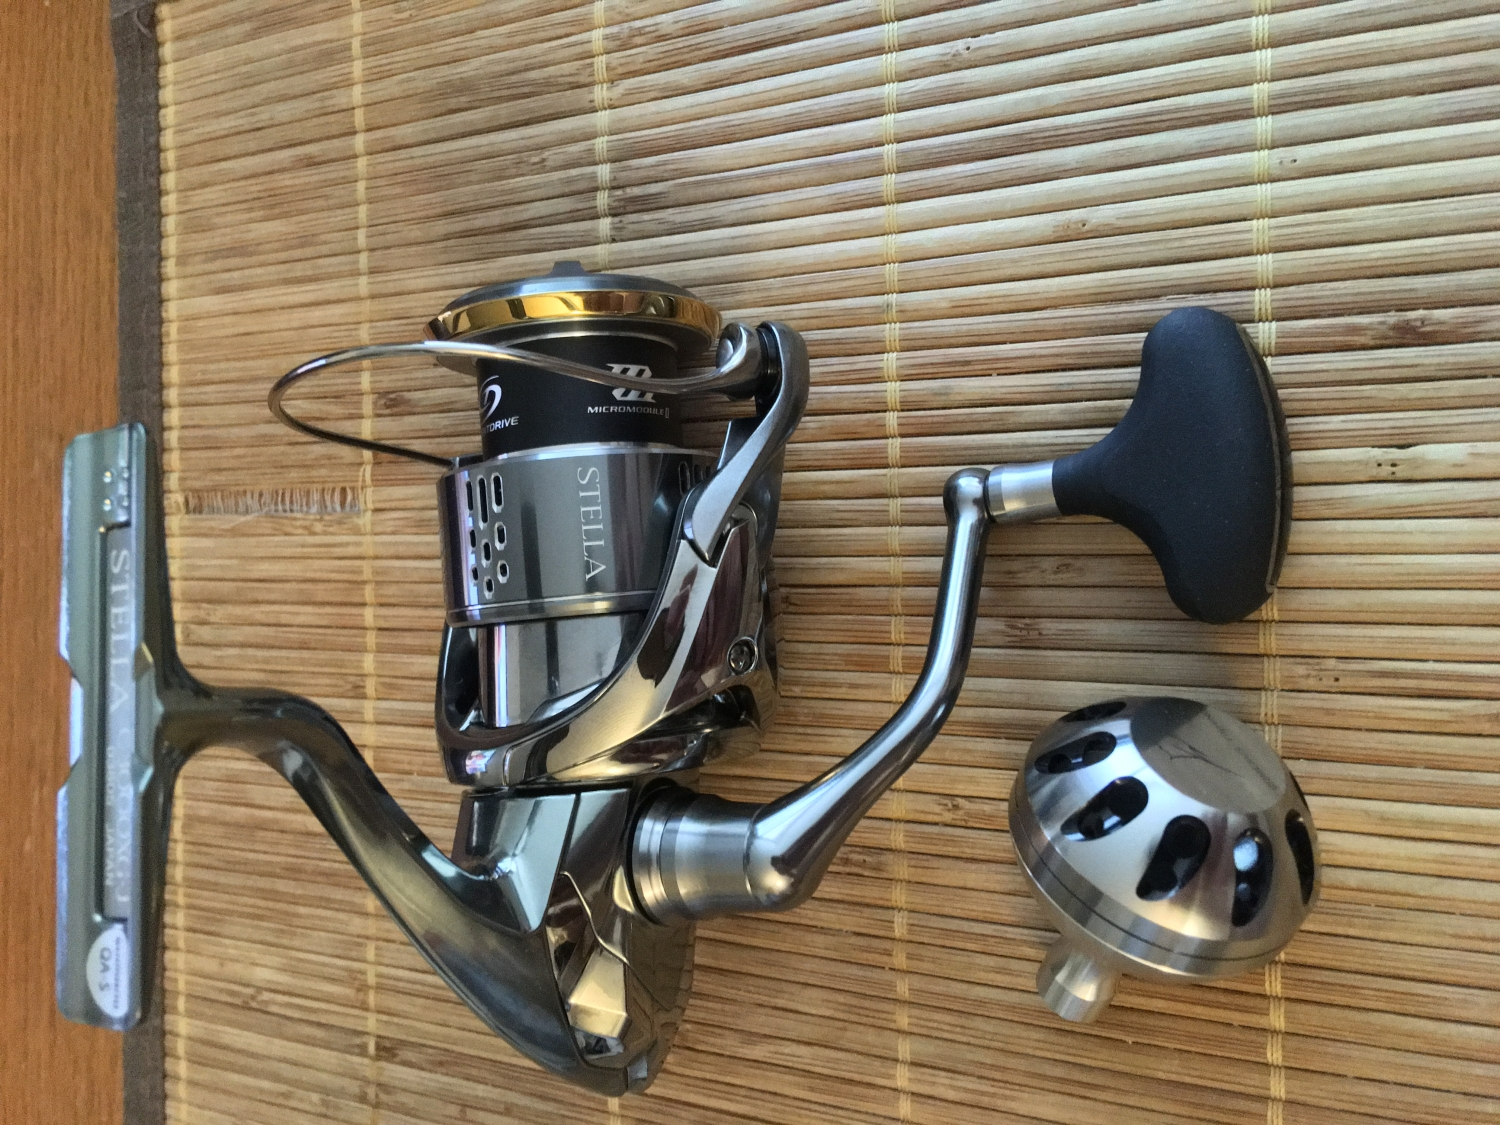 a7706604884 ... sound fishing (some says Shimano Stradic FK C5000XG and Stella FJ  C5000XG.....), But, light weight reel with max 20lbs drag, continuous 13lbs  drag, ...